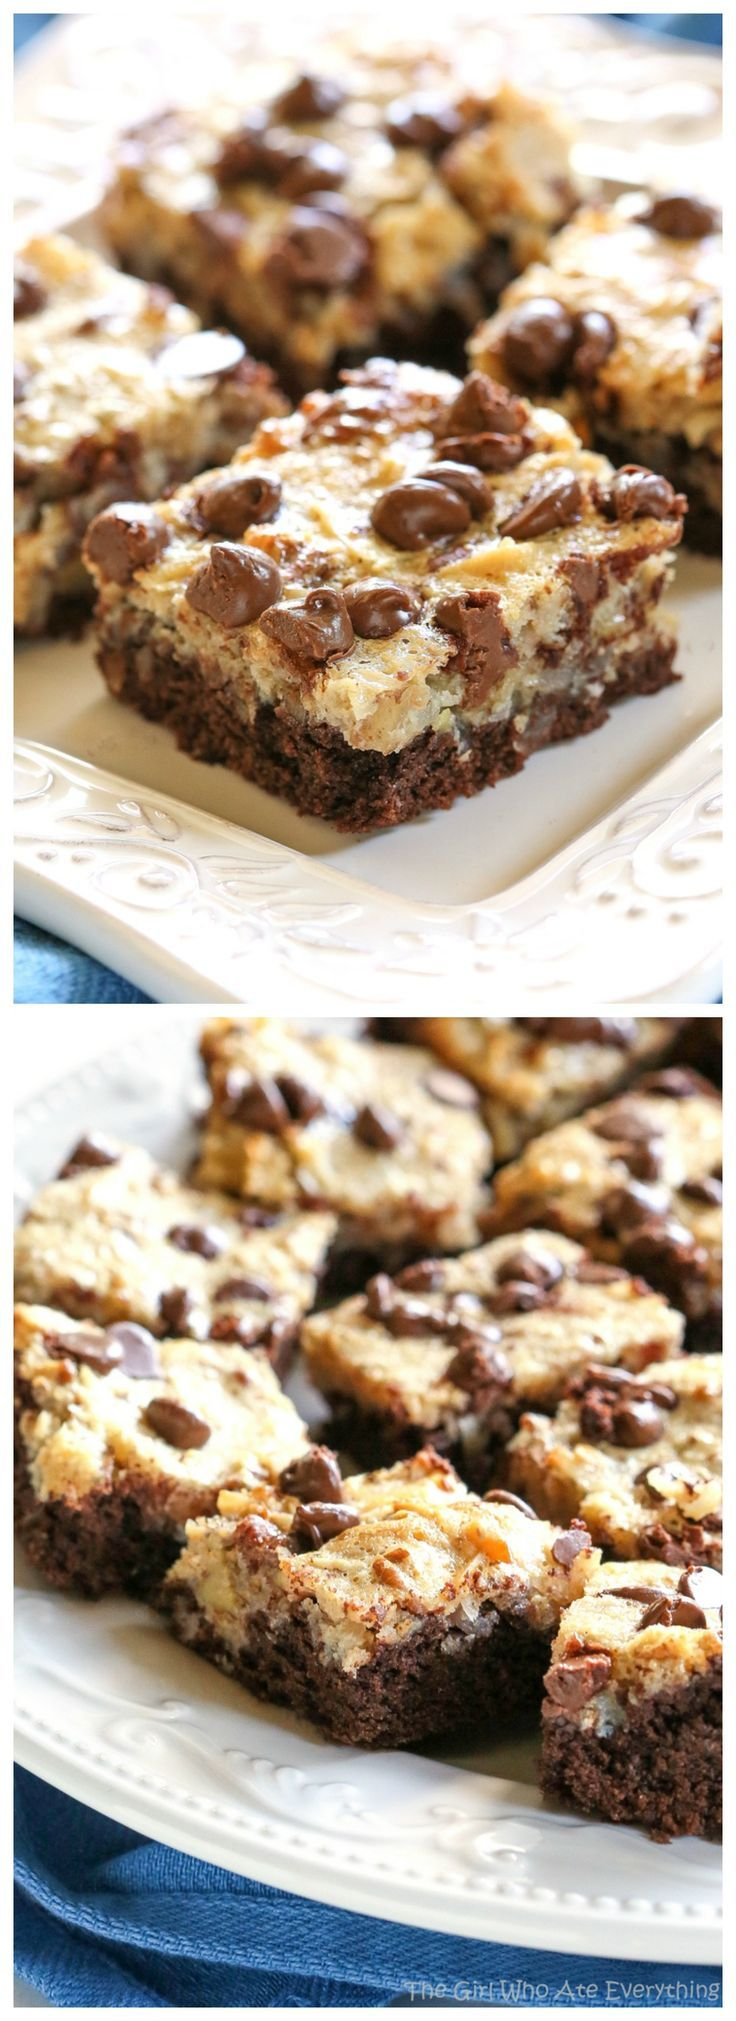 These German Chocolate Cake Bars are all the flavors of your favorite cake in a bar! the-girl-who-ate-everything.com